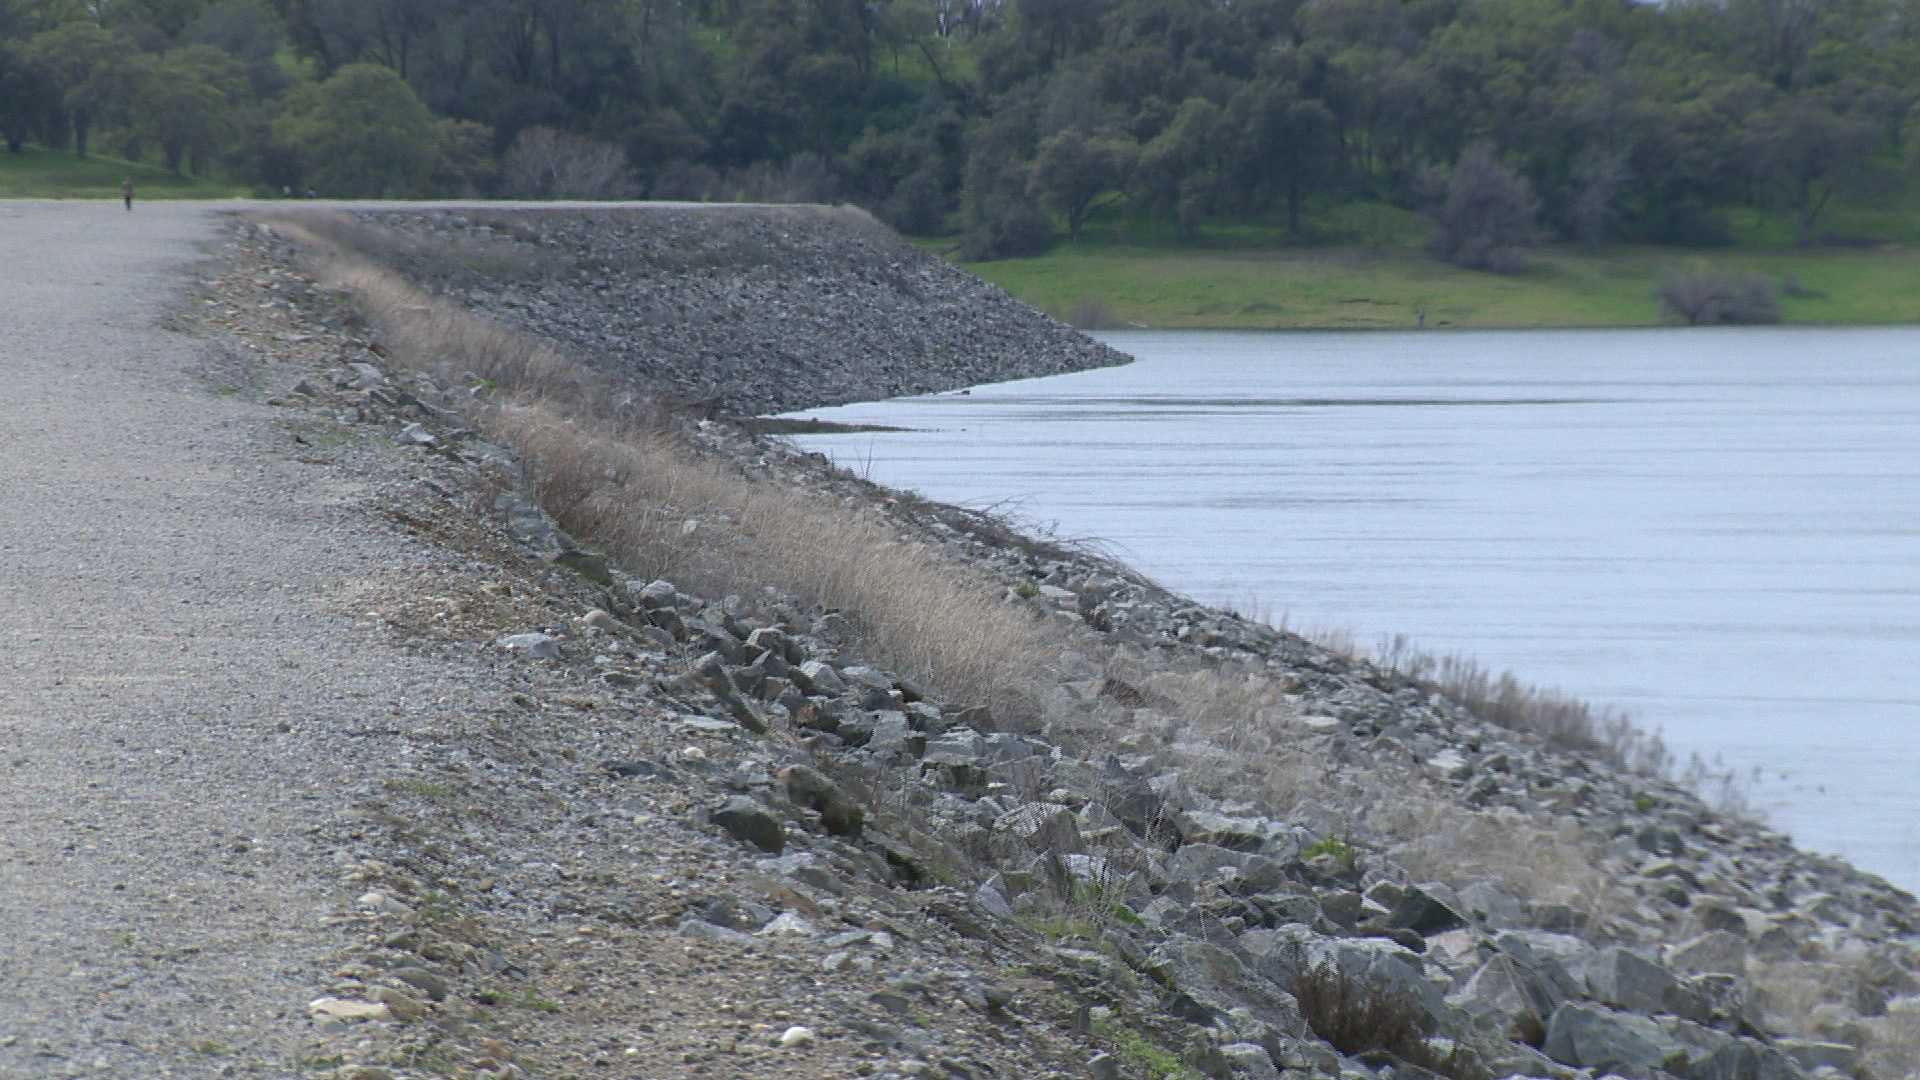 Mormon Island Auxiliary Dam protects hundreds of homes in the city of Folsom.